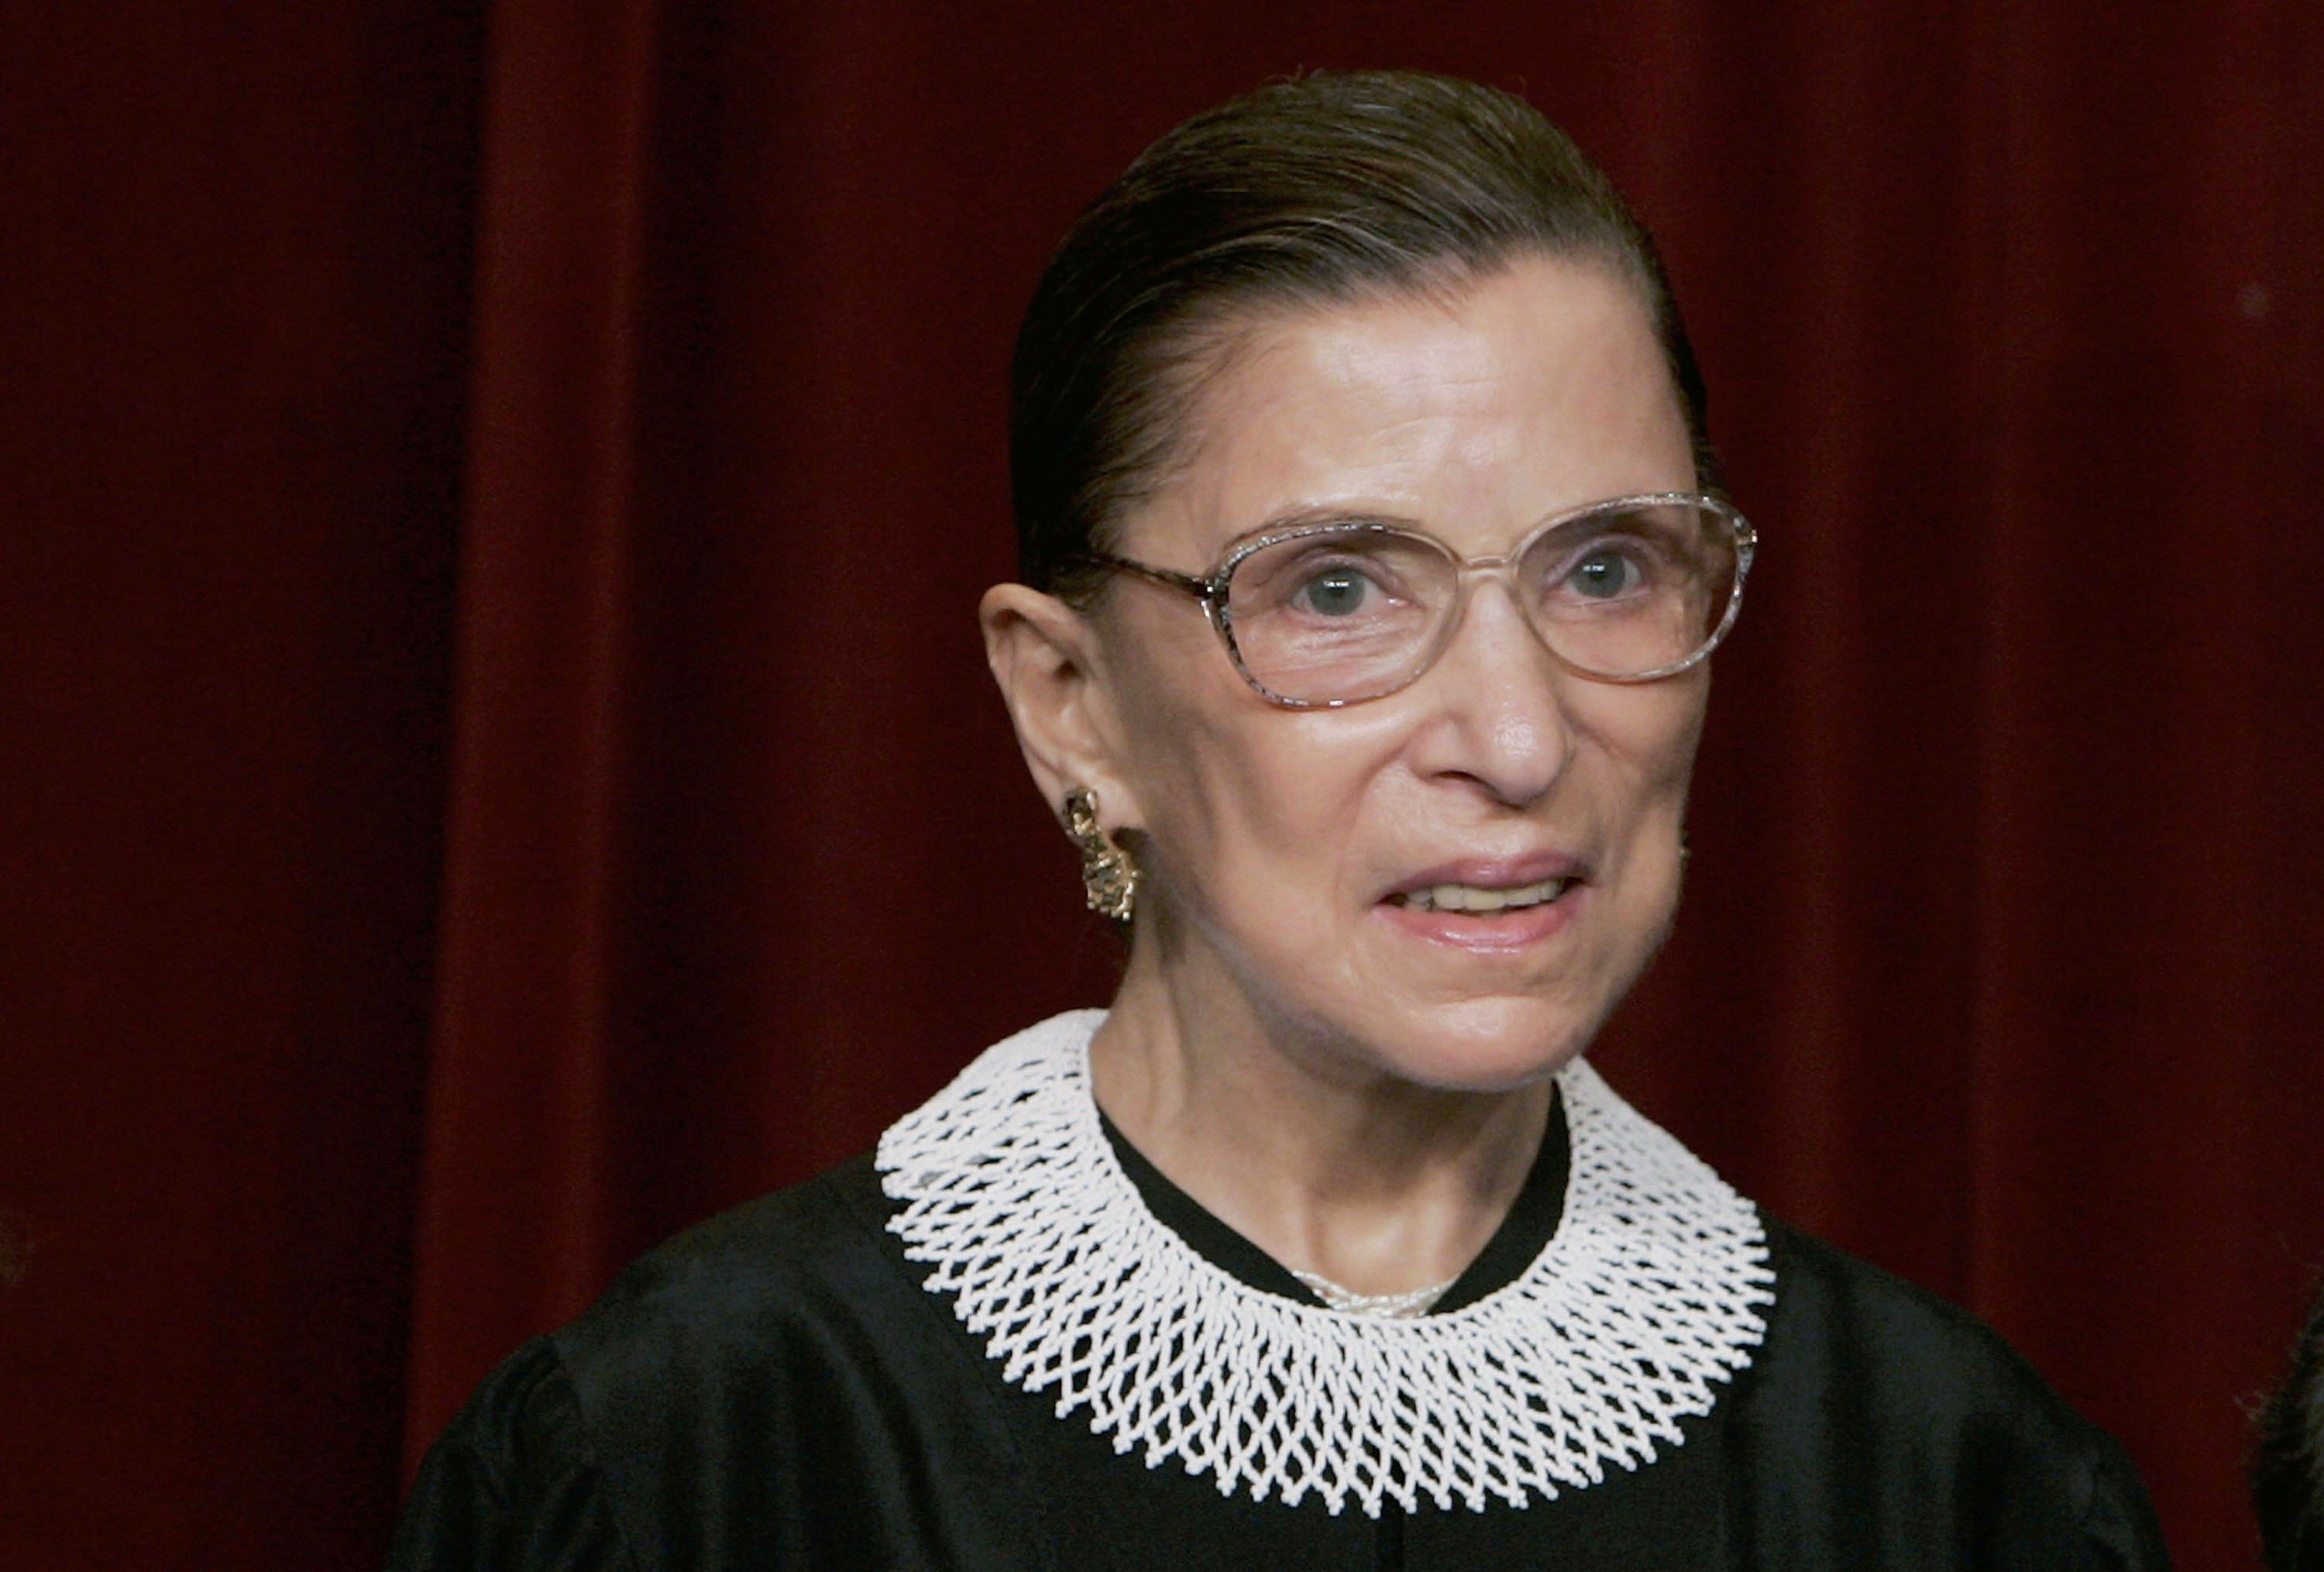 Justice Ruth Bader Ginsburg, Trailblazing Feminist and Legal Icon, Has Died